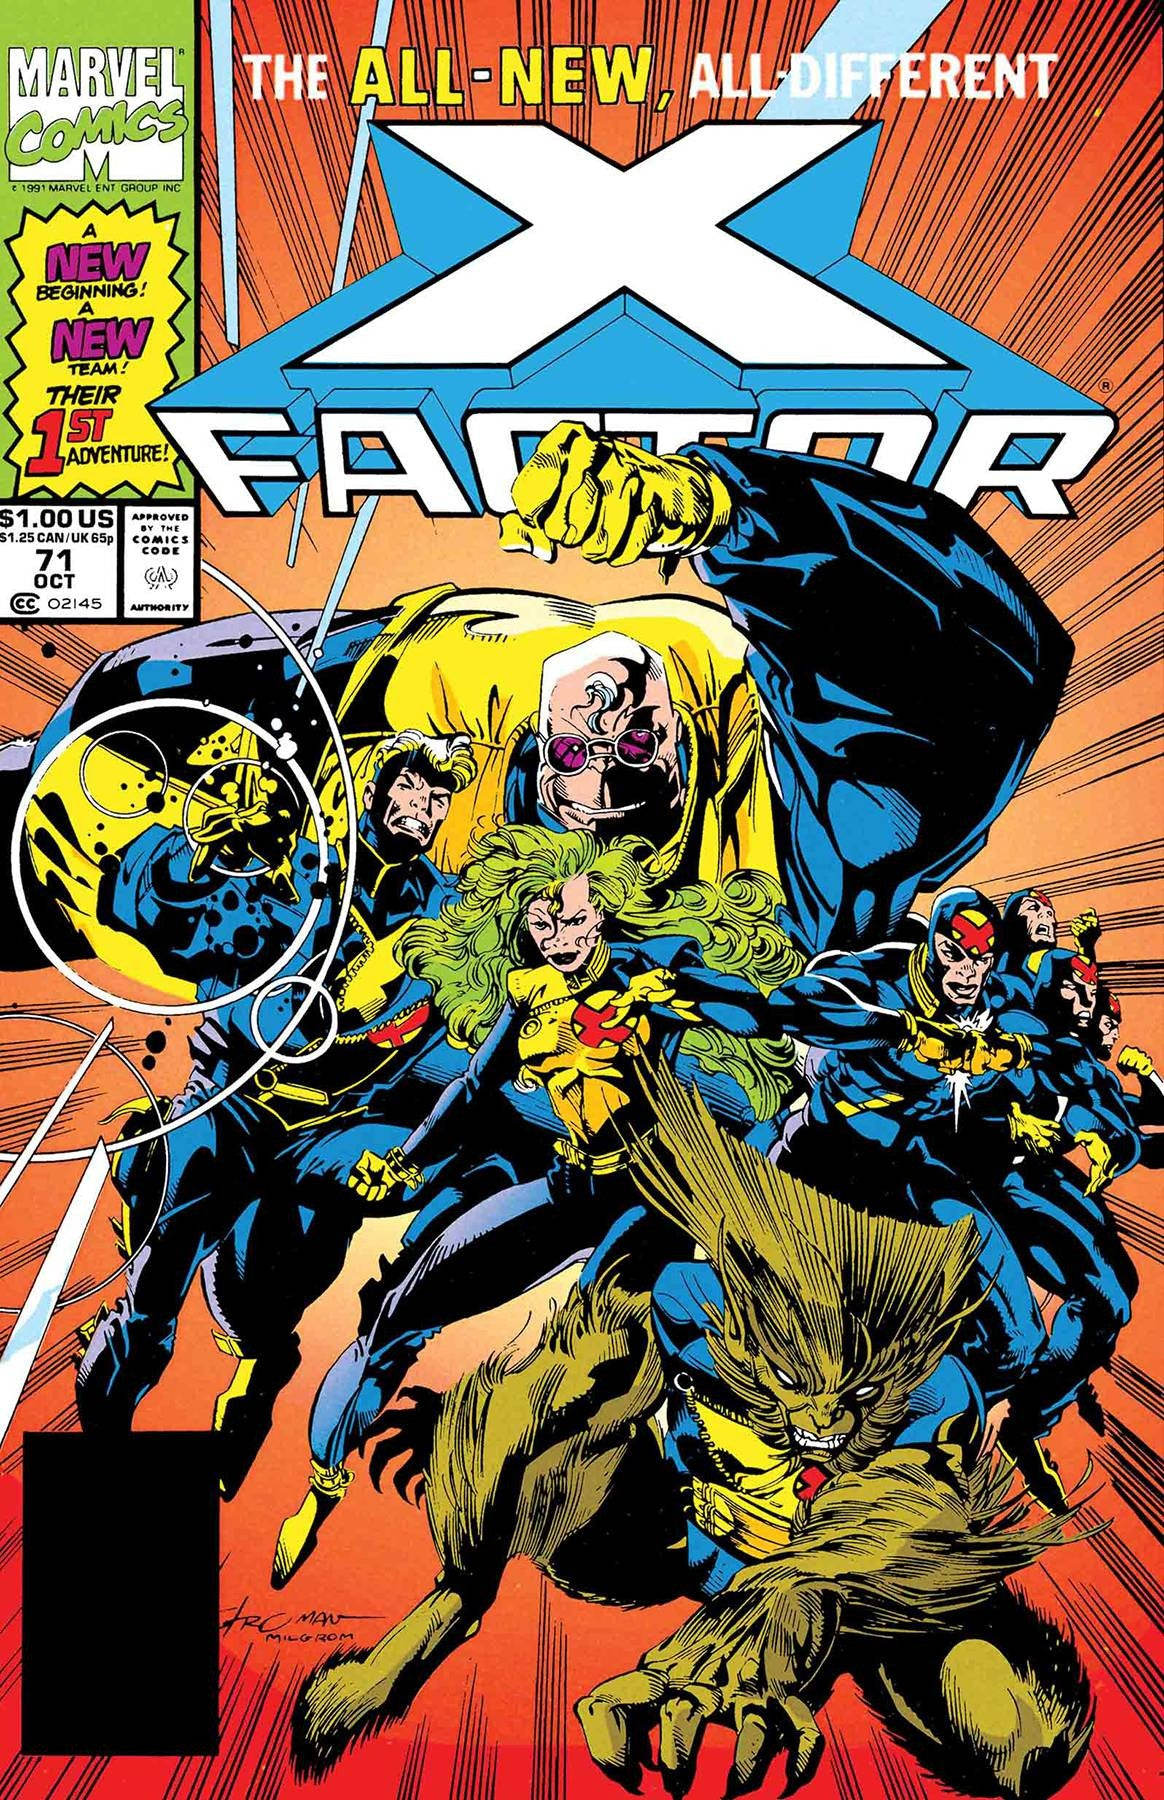 TRUE BELIEVERS X-FACTOR MUTANT GENESIS #1